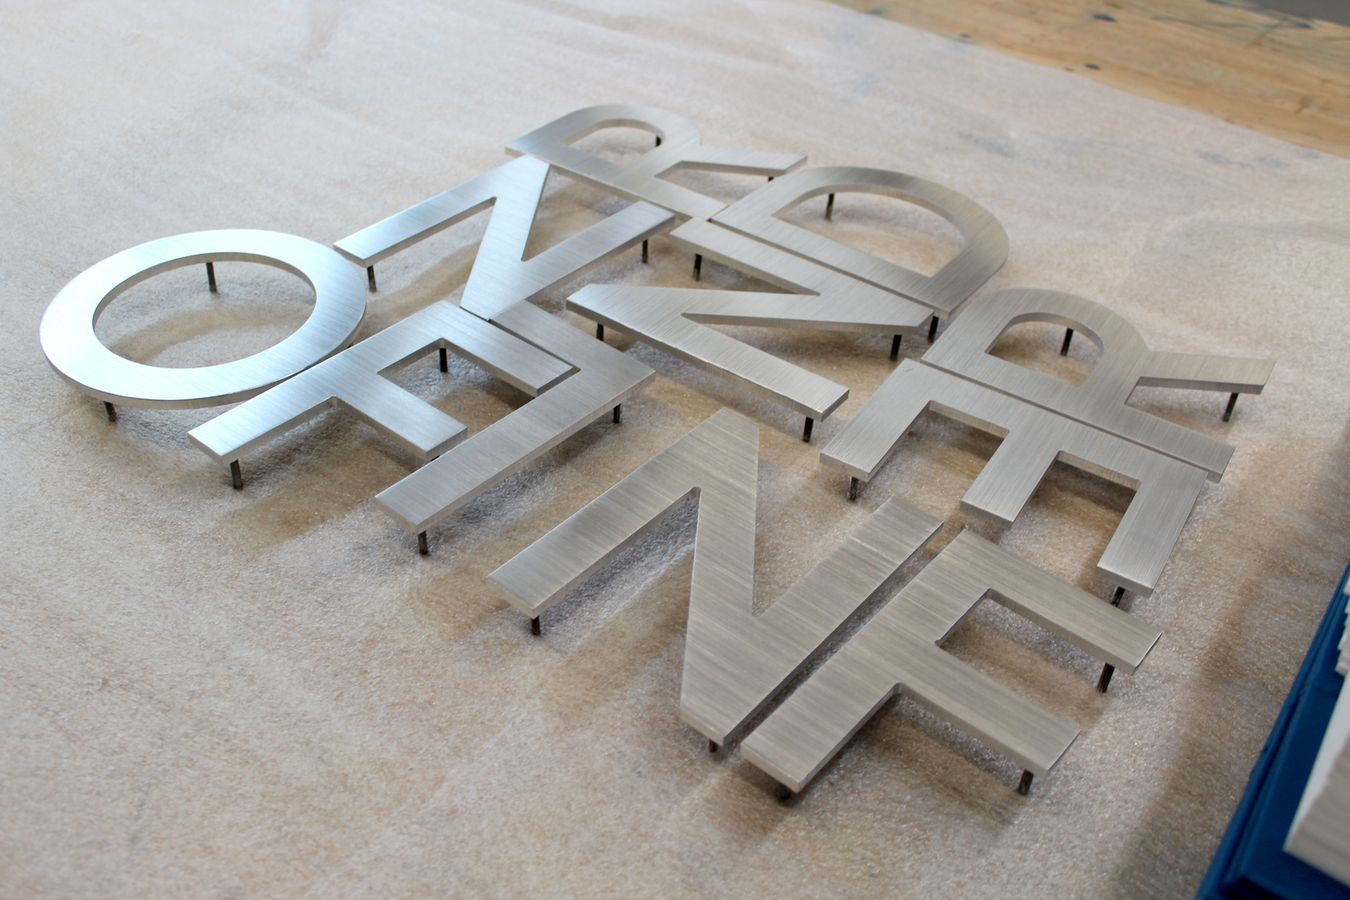 brushed dimensional letters